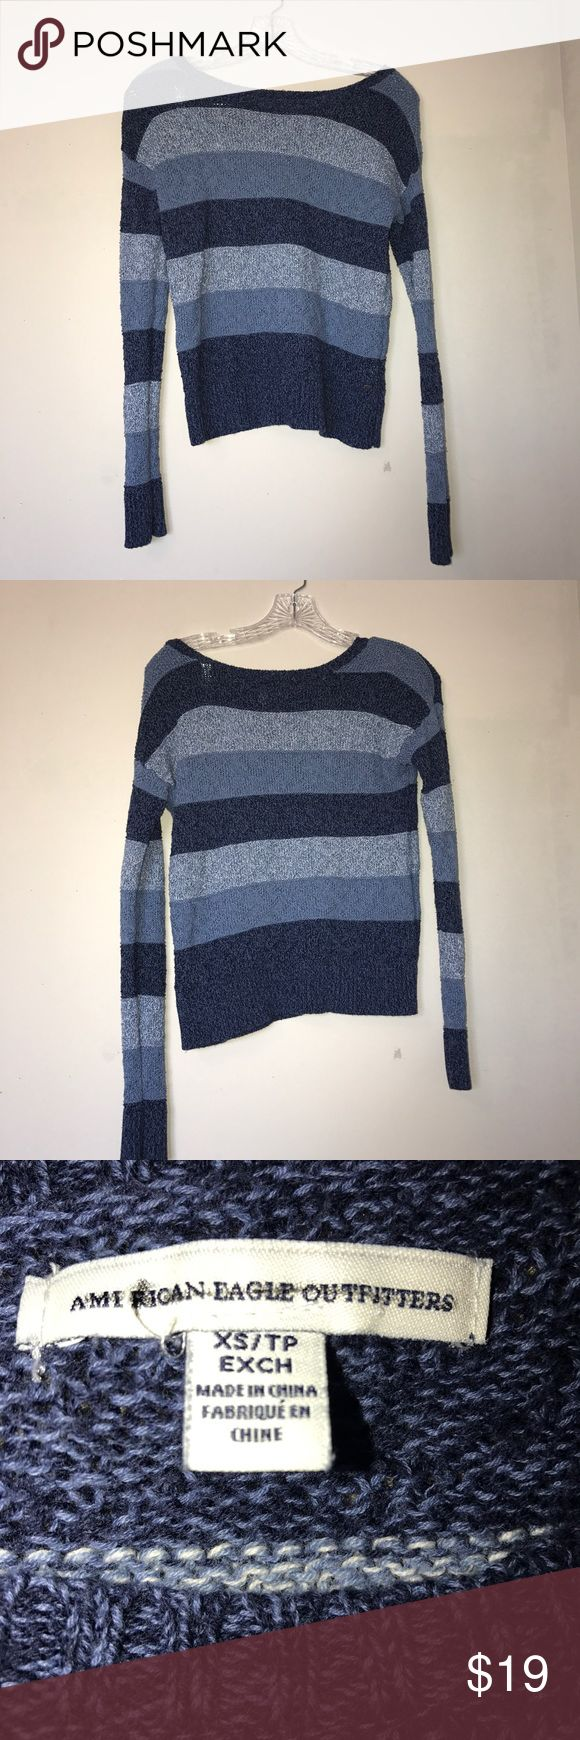 American Eagle Sweater Striped sweater with different shades of blue. Very cute, unfortunately doesn't fit me. Worn once for about an hour, practically new. American Eagle Outfitters Sweaters Crew & Scoop Necks